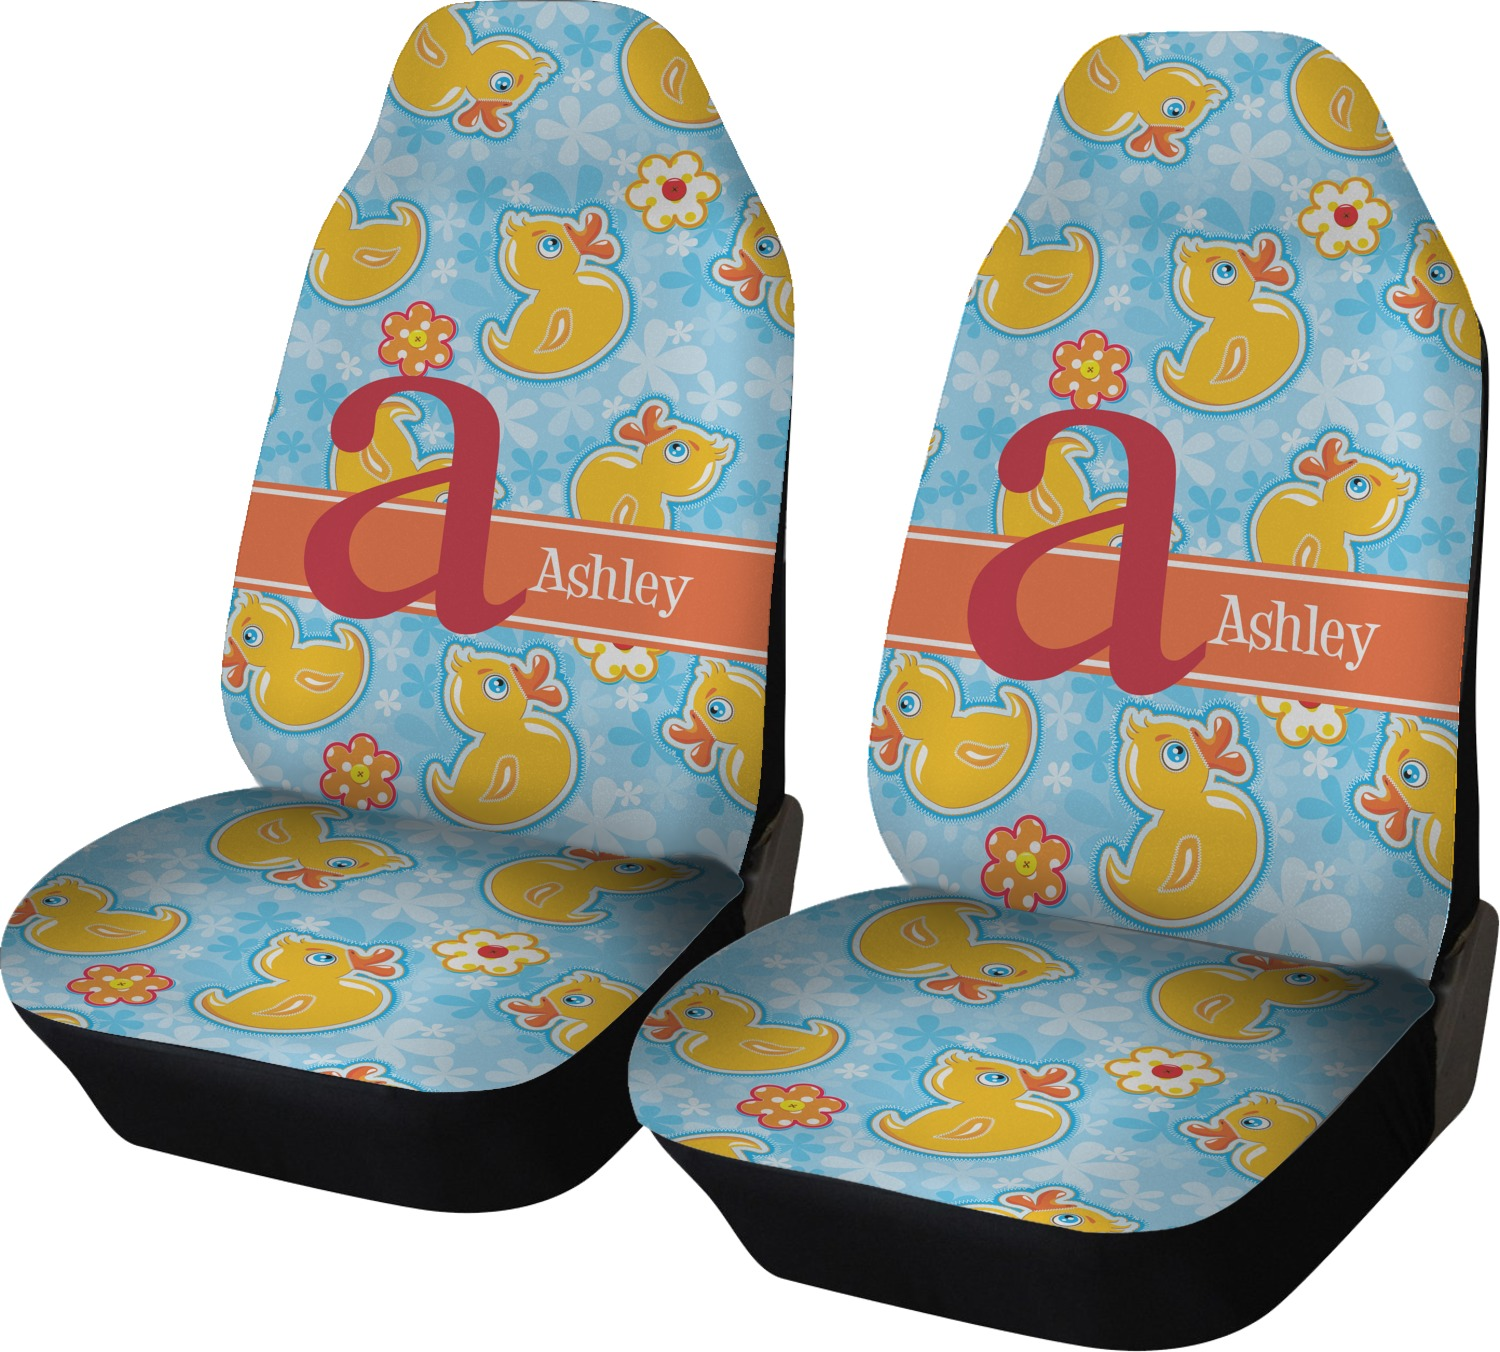 Rubber Duckies Amp Flowers Car Seat Covers Set Of Two